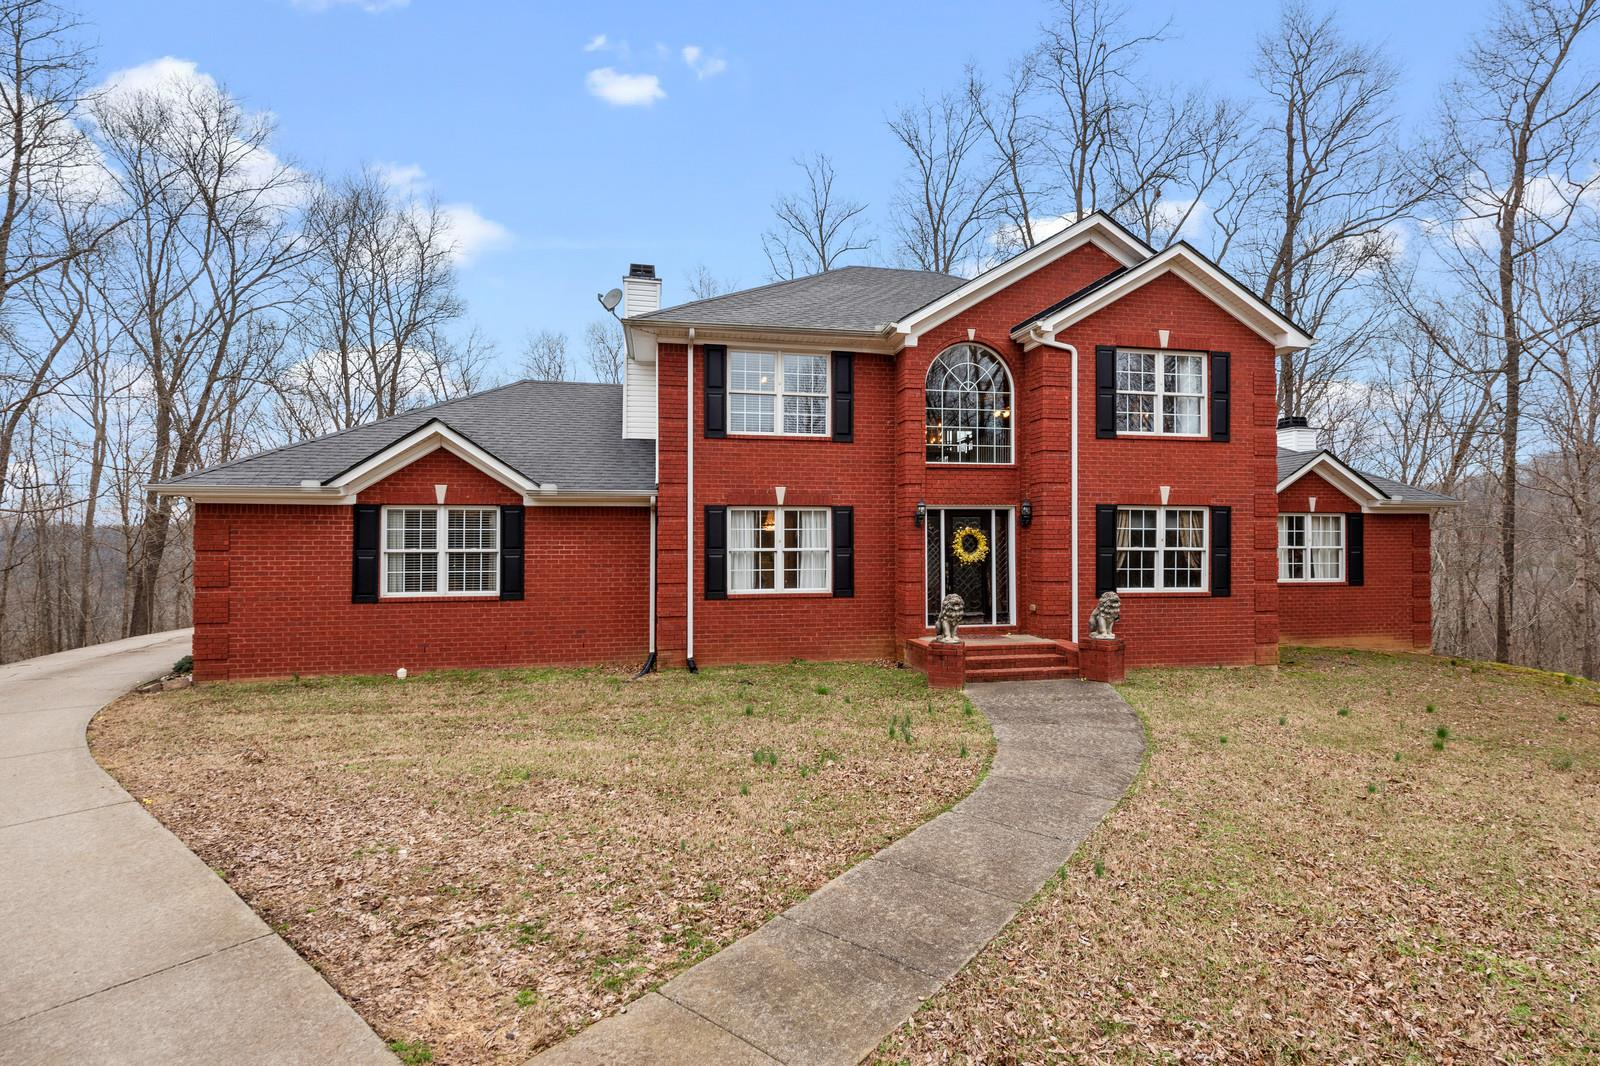 $1,195,000 - 3Br/3Ba -  for Sale in Rural Land, Whites Creek